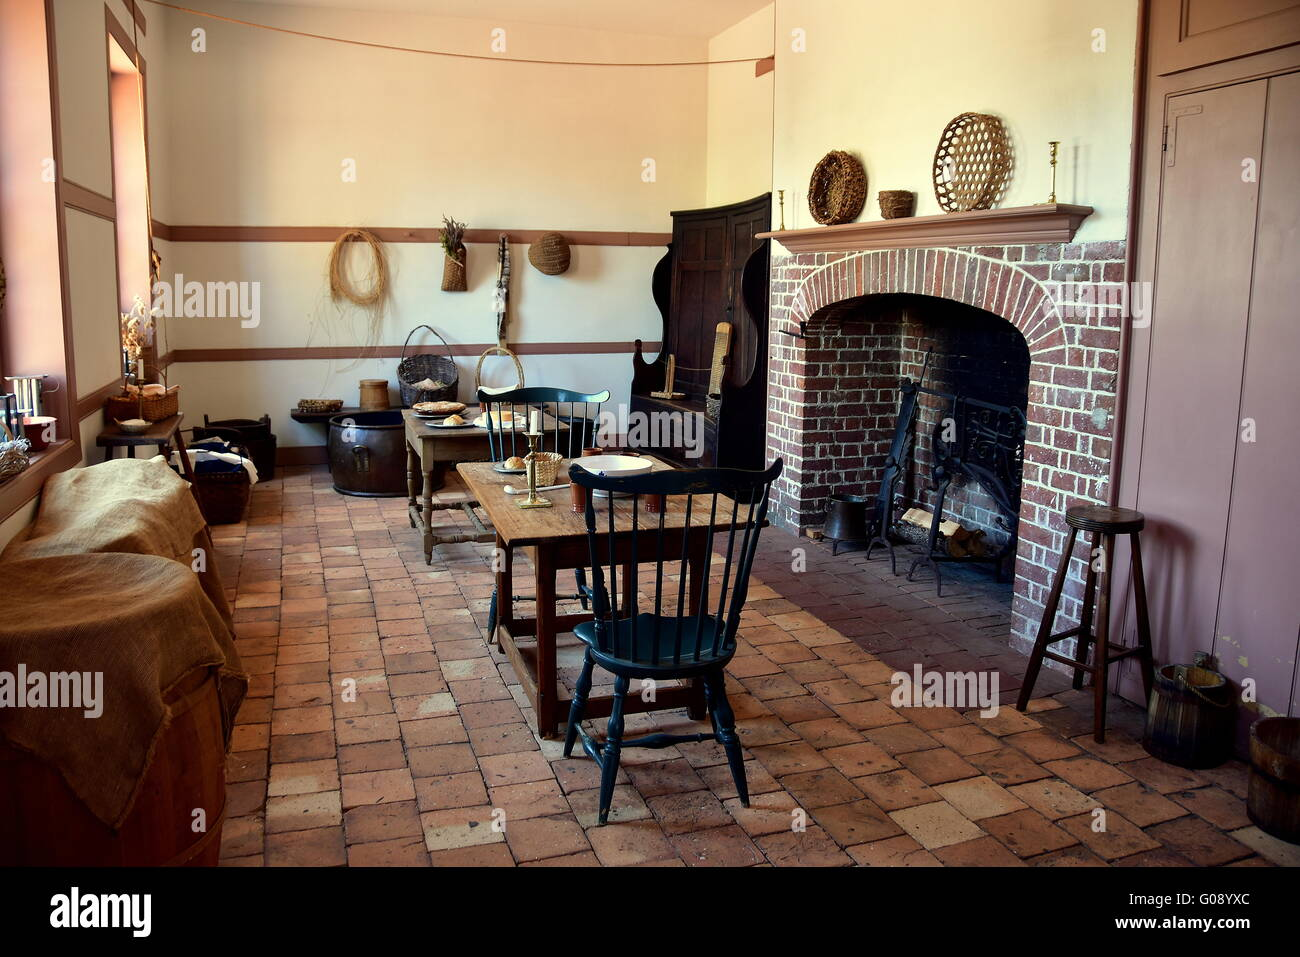 New Bern North Carolina The Servants Dining Room With Table Chairs Implements And Fireplace In Tryon Palace Kitchen